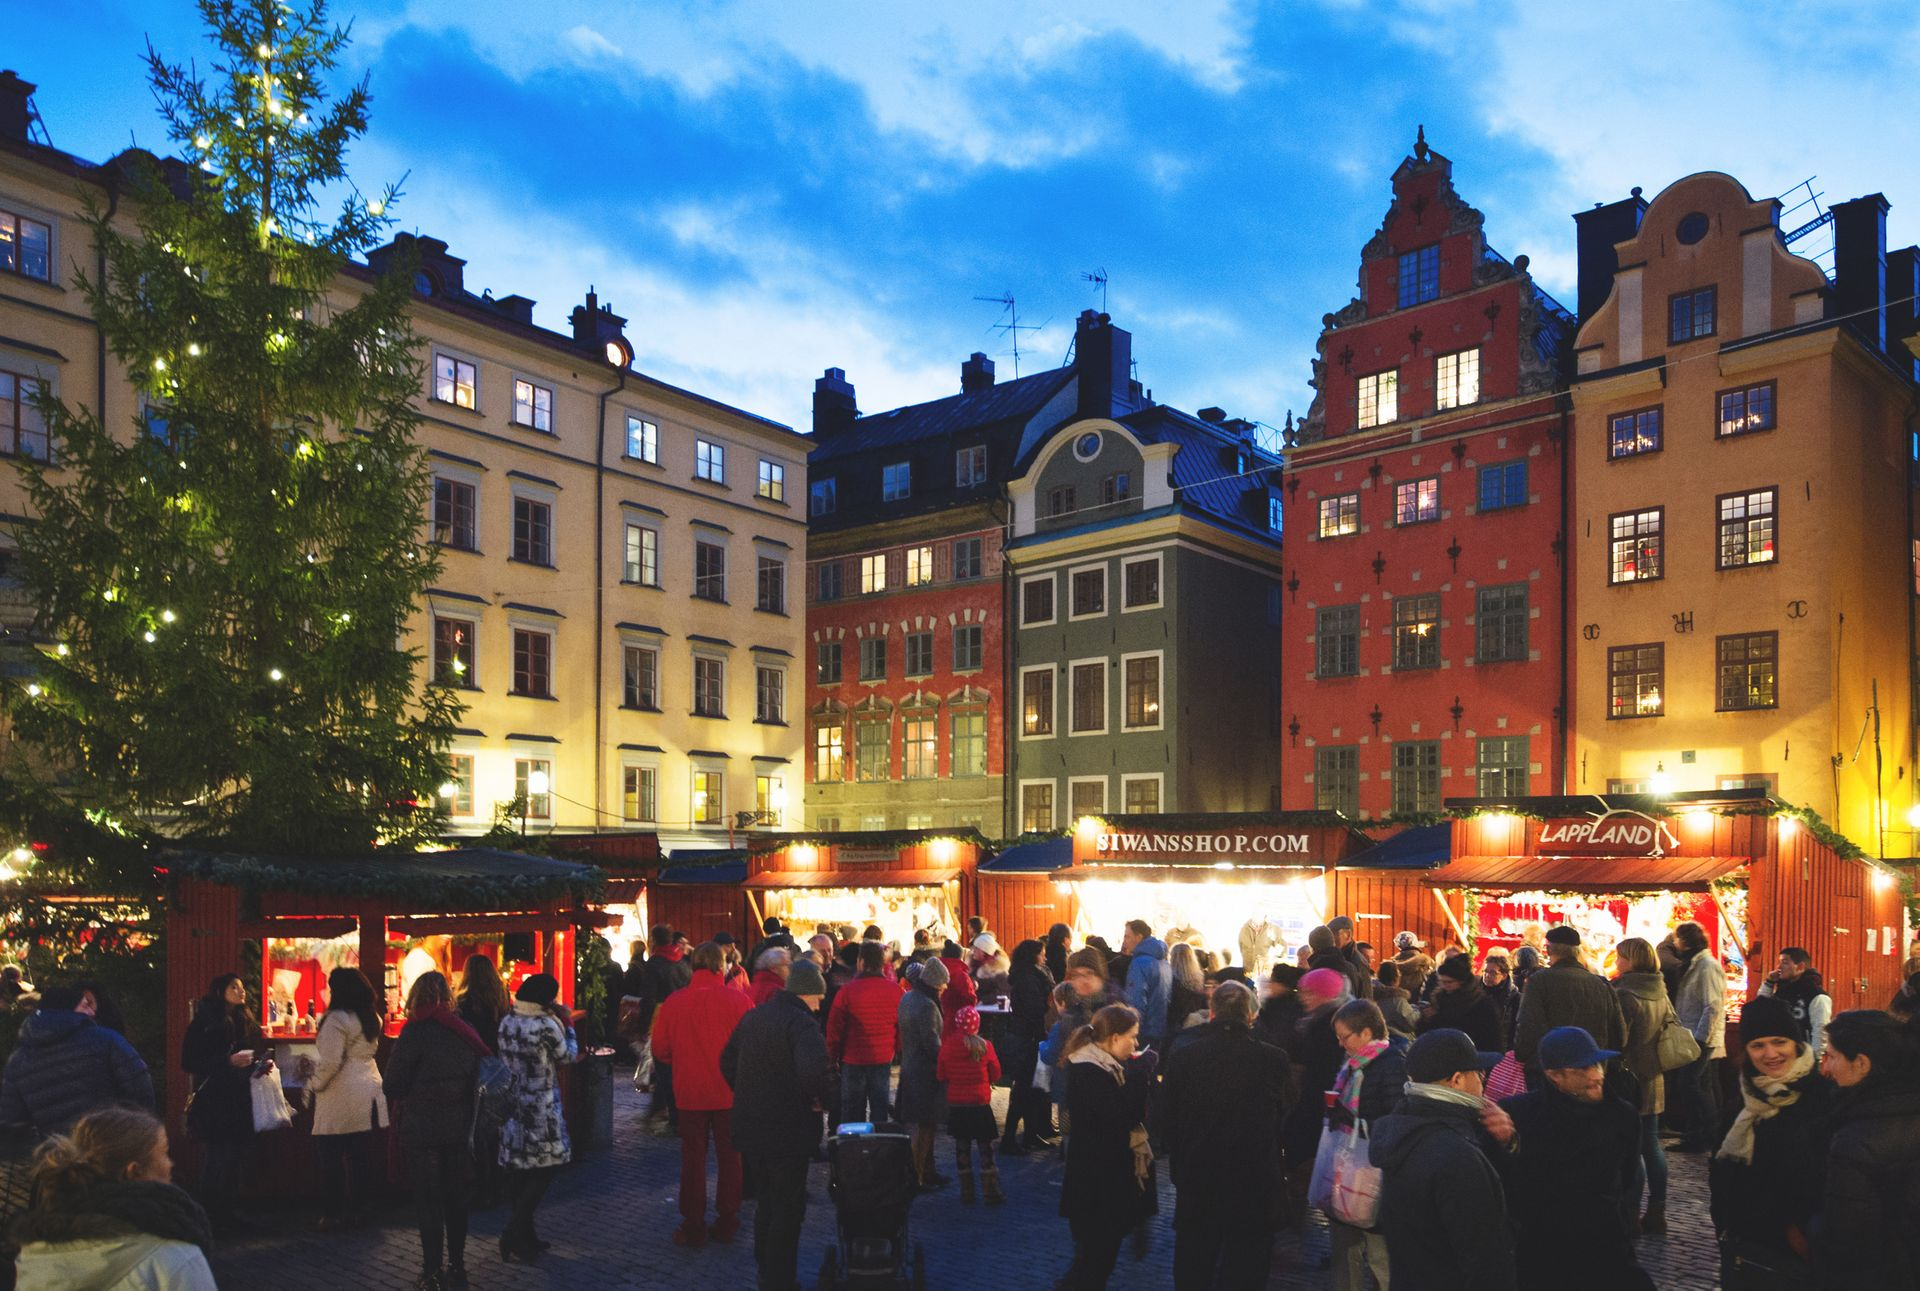 A Christmas market in Stockholm's Old Town.